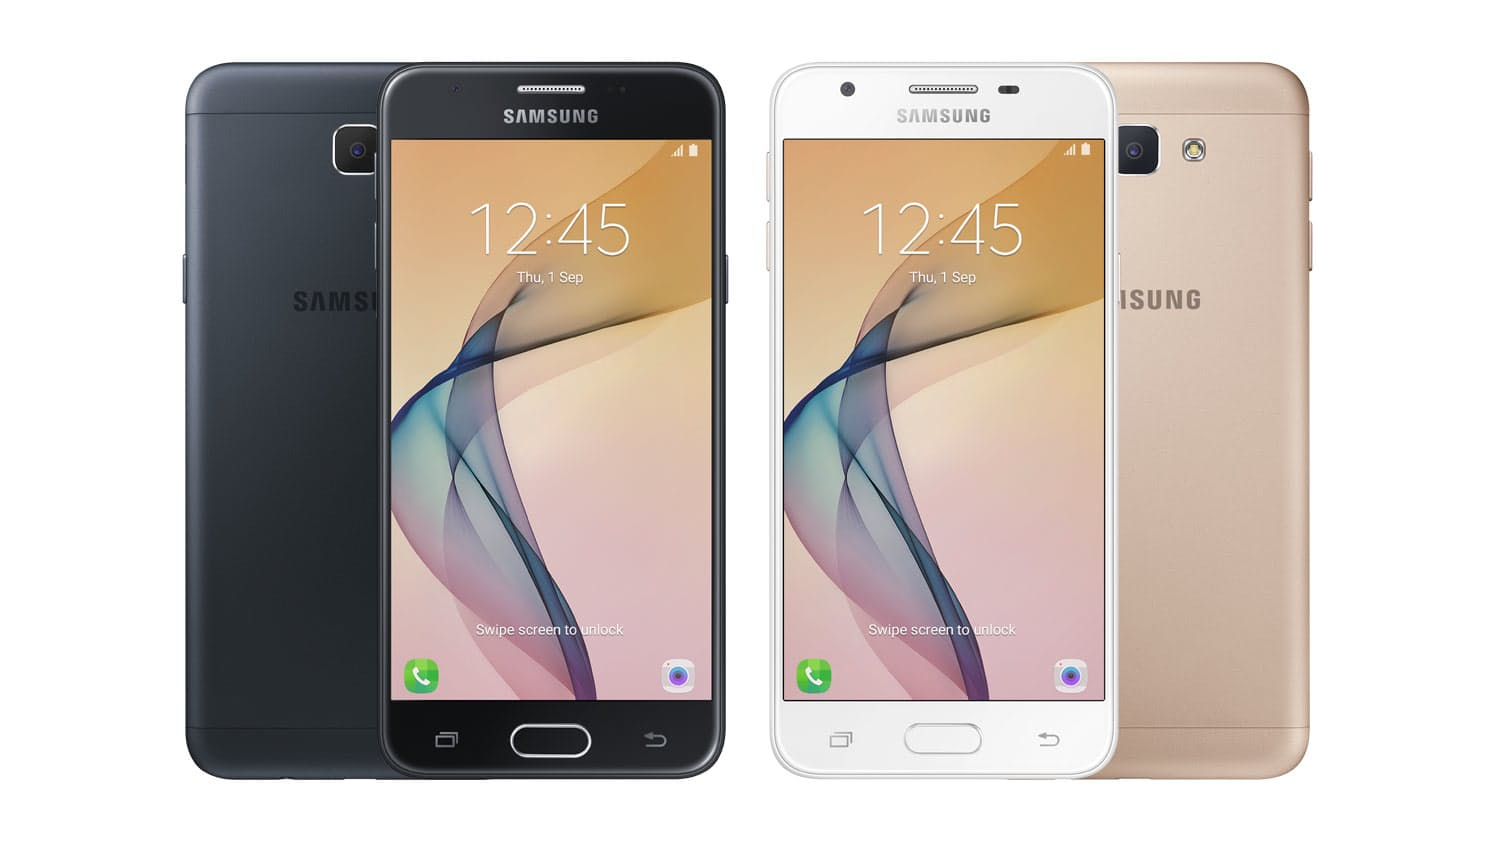 Samsung Galaxy J5 Prime Specifications, Hard Reset Instructions and